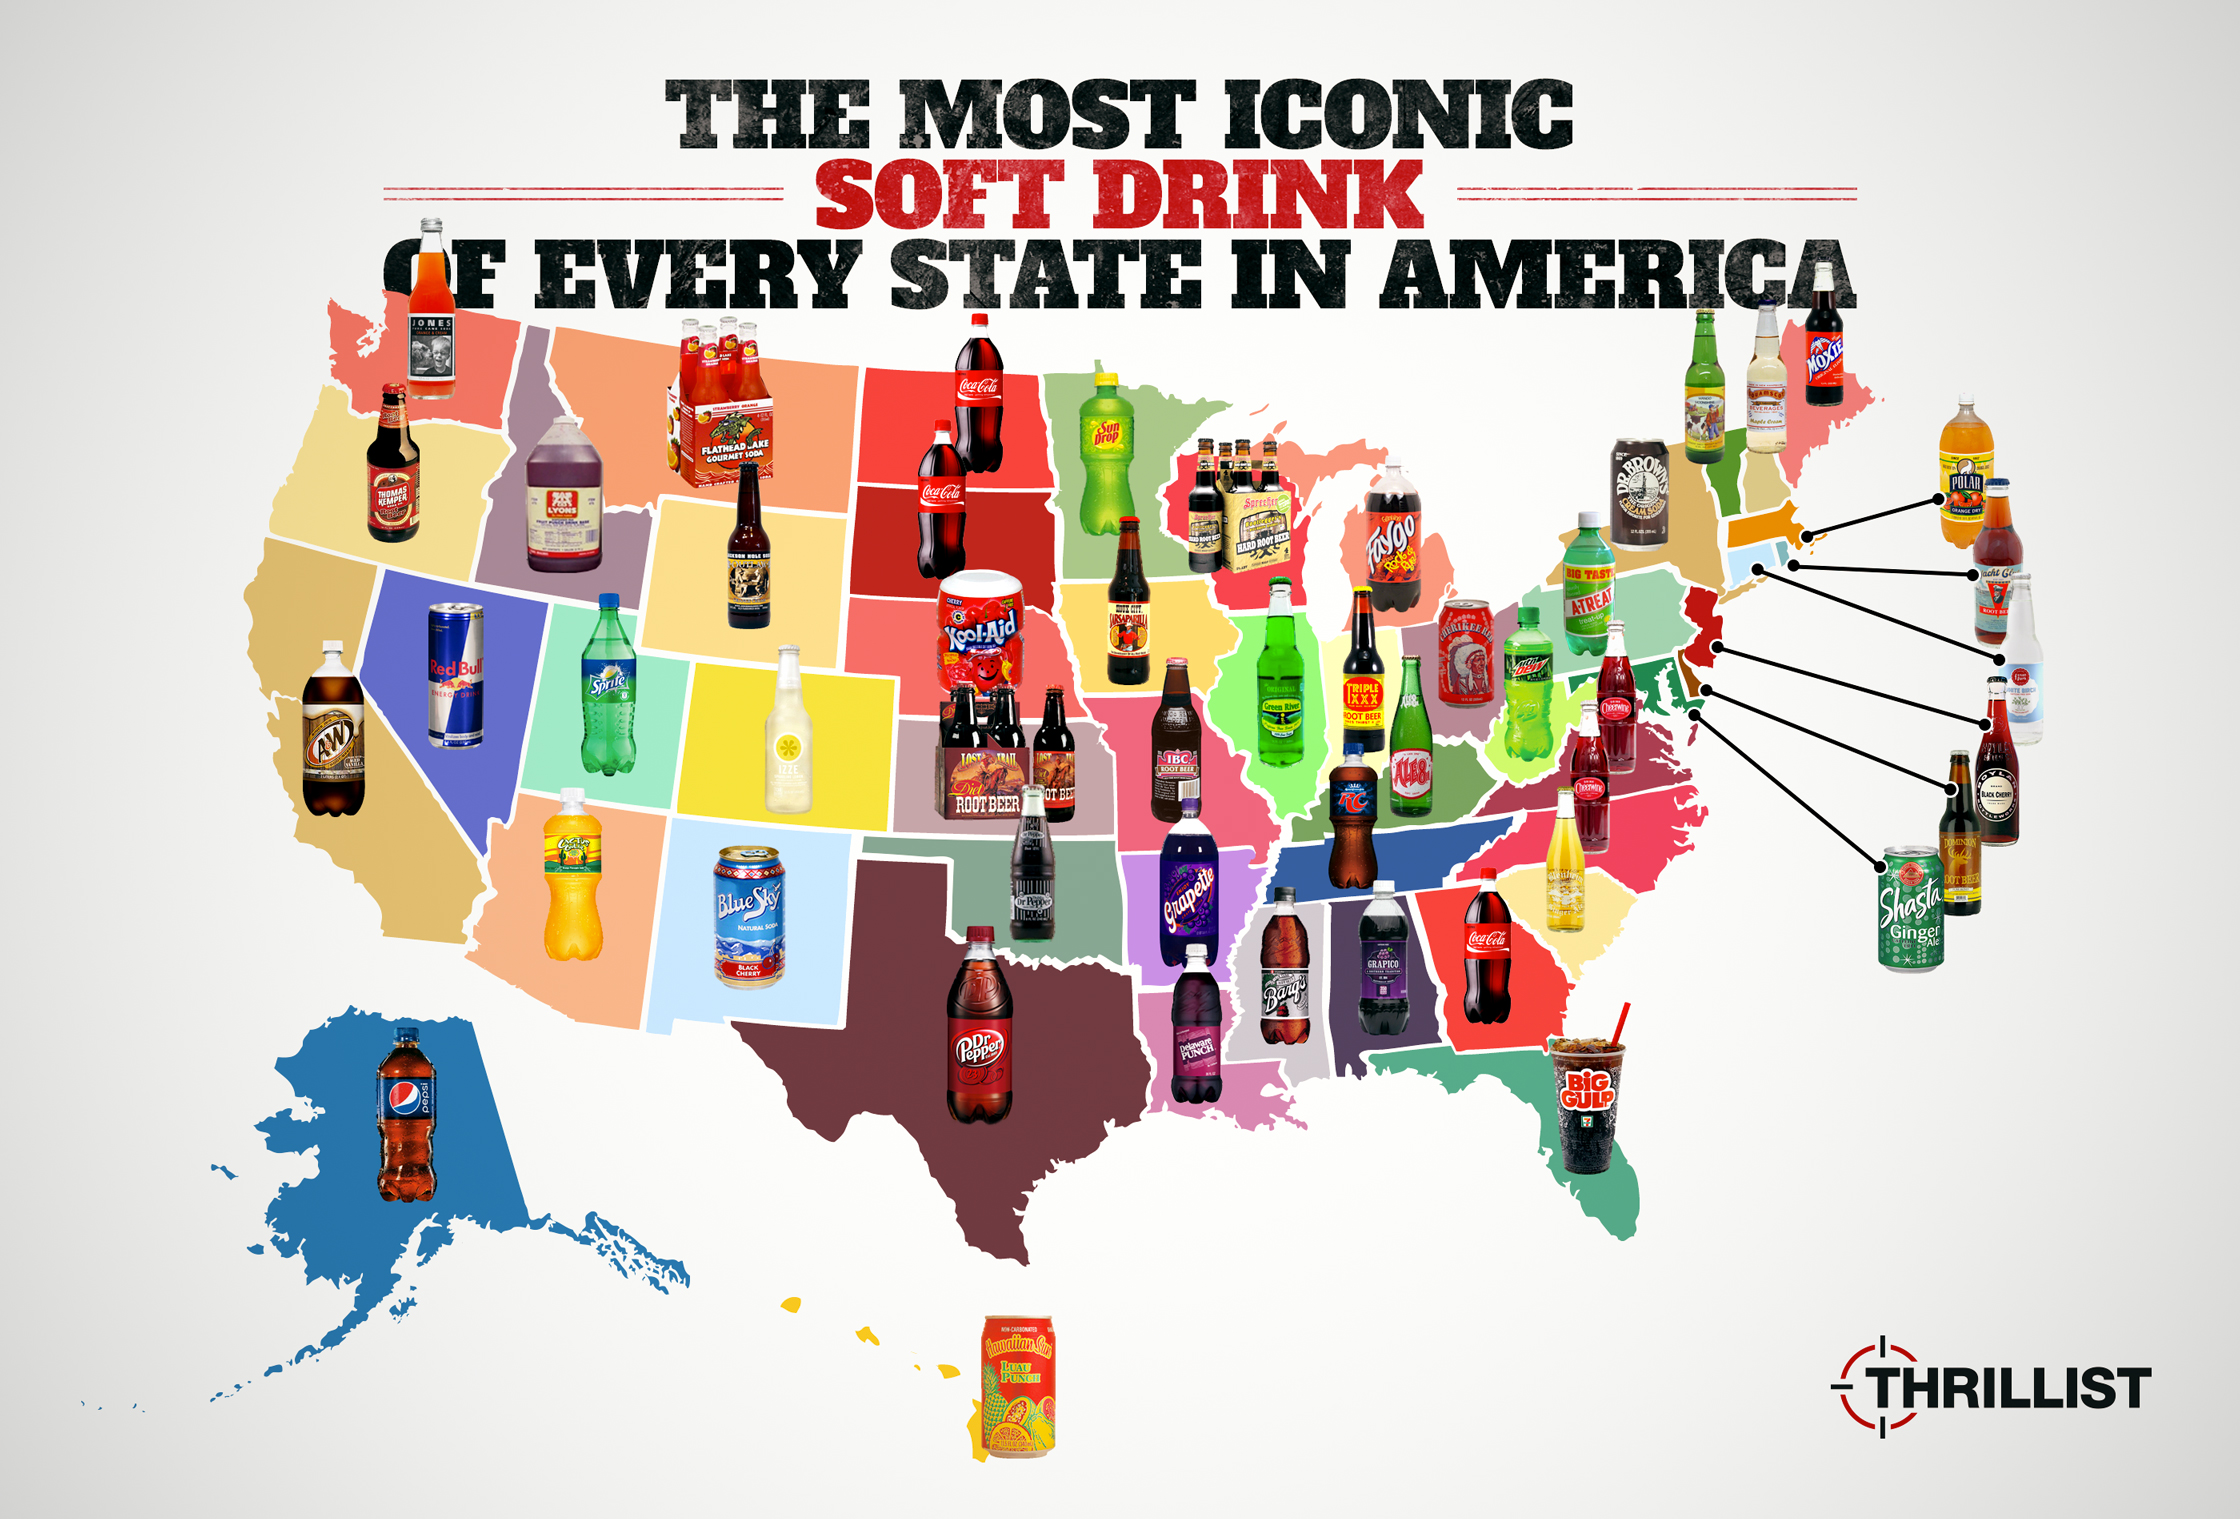 Best Soft Drink In Every State Best Soda In Every State Thrillist - Soda-map-of-the-us